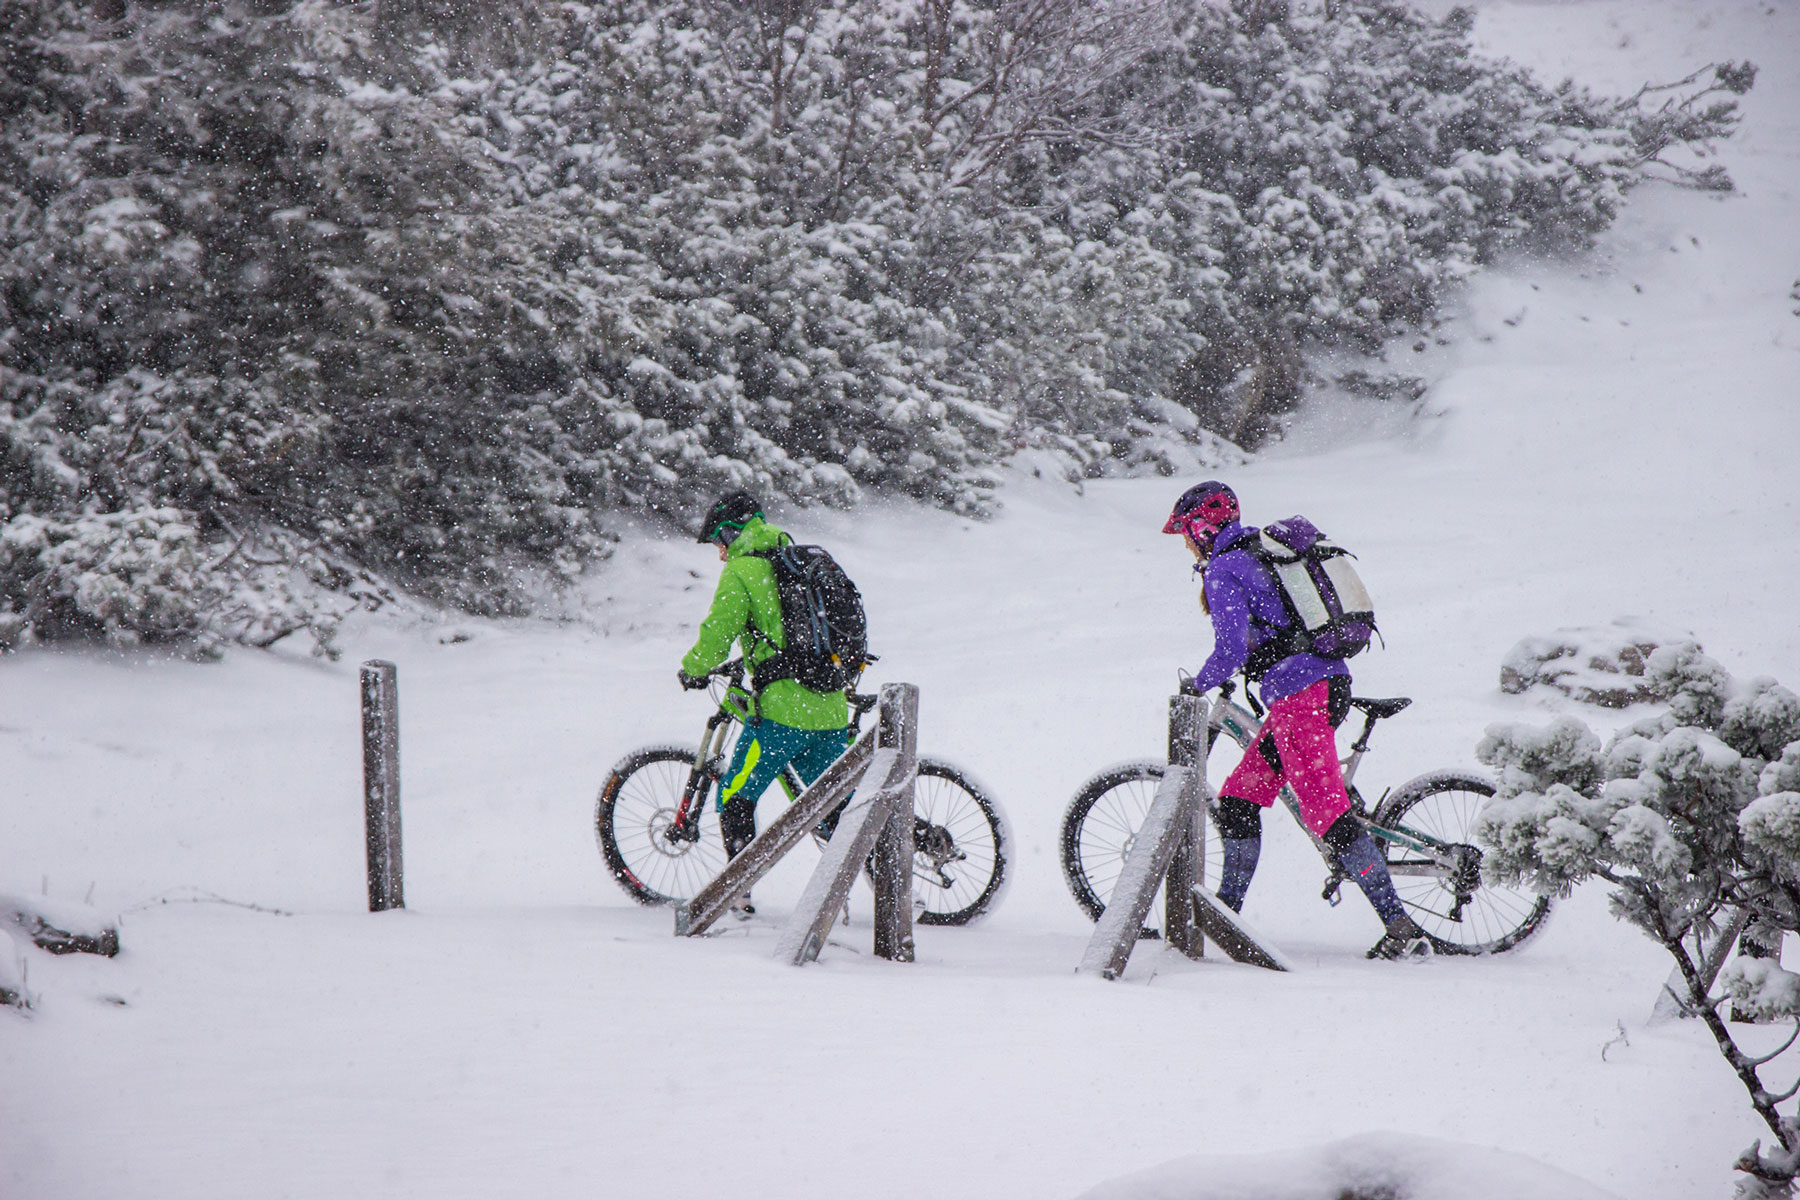 lisa-amenda-munichmountaingirls-mountainbike-winter-schnee-kampenwand-fotograf-Philipp-Koenig